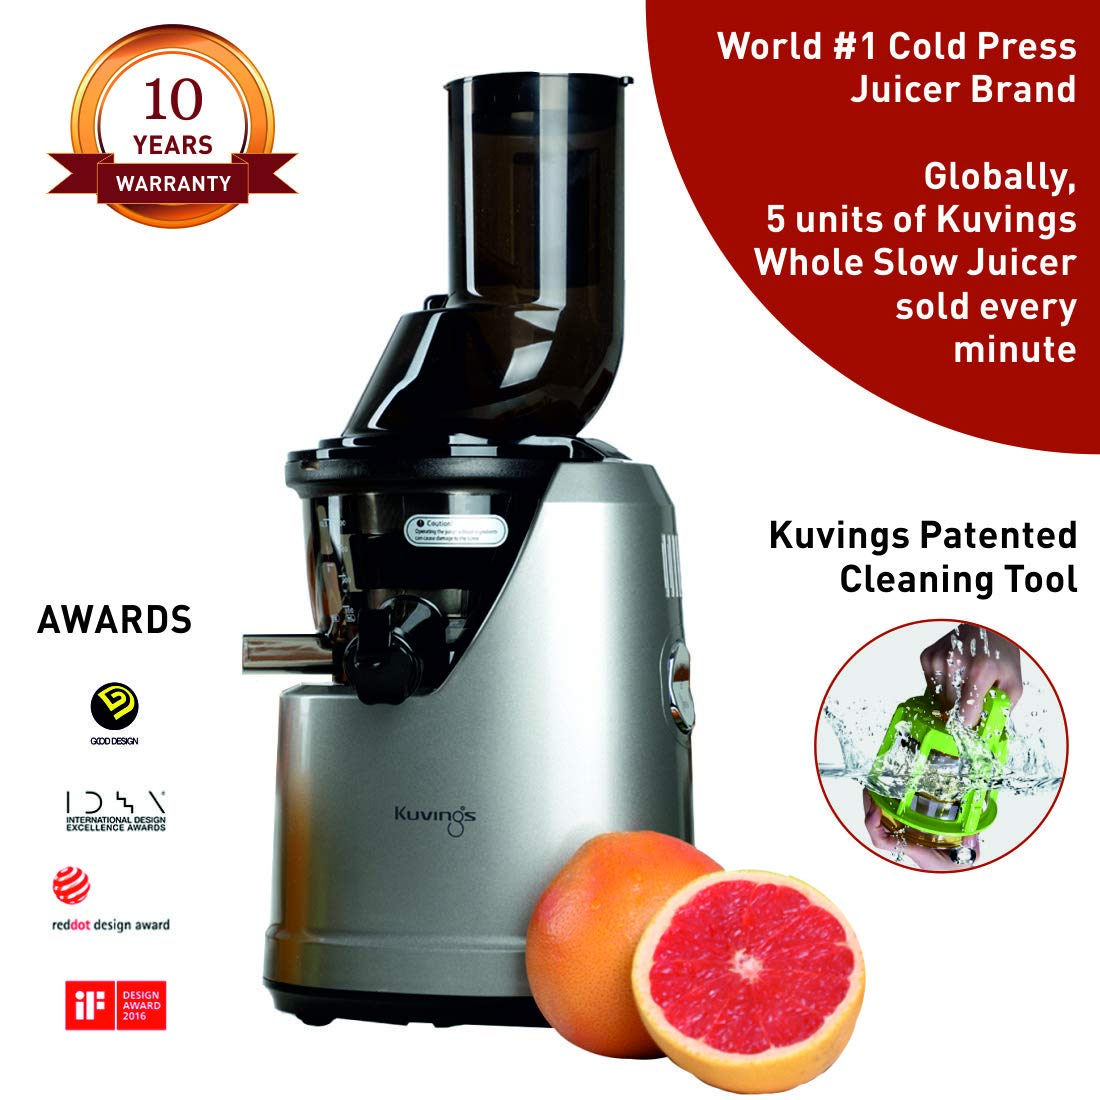 Kuvings Professional Cold Press Whole Slow Juicer